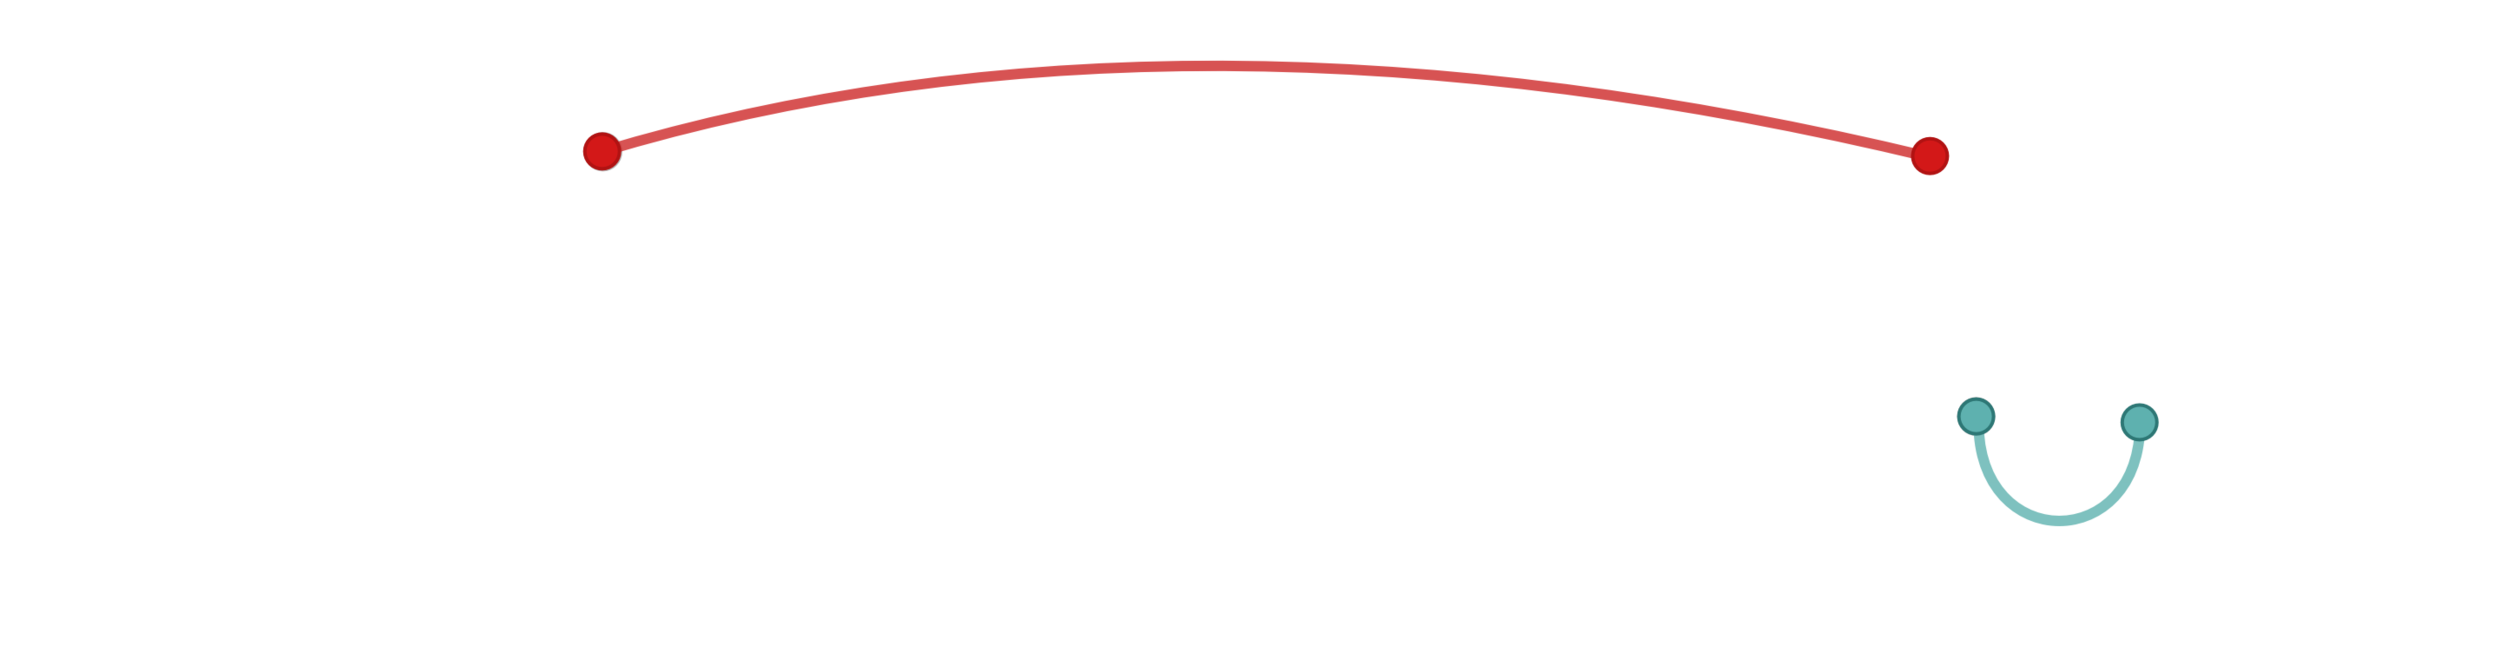 Sound Synth Title Dark.png